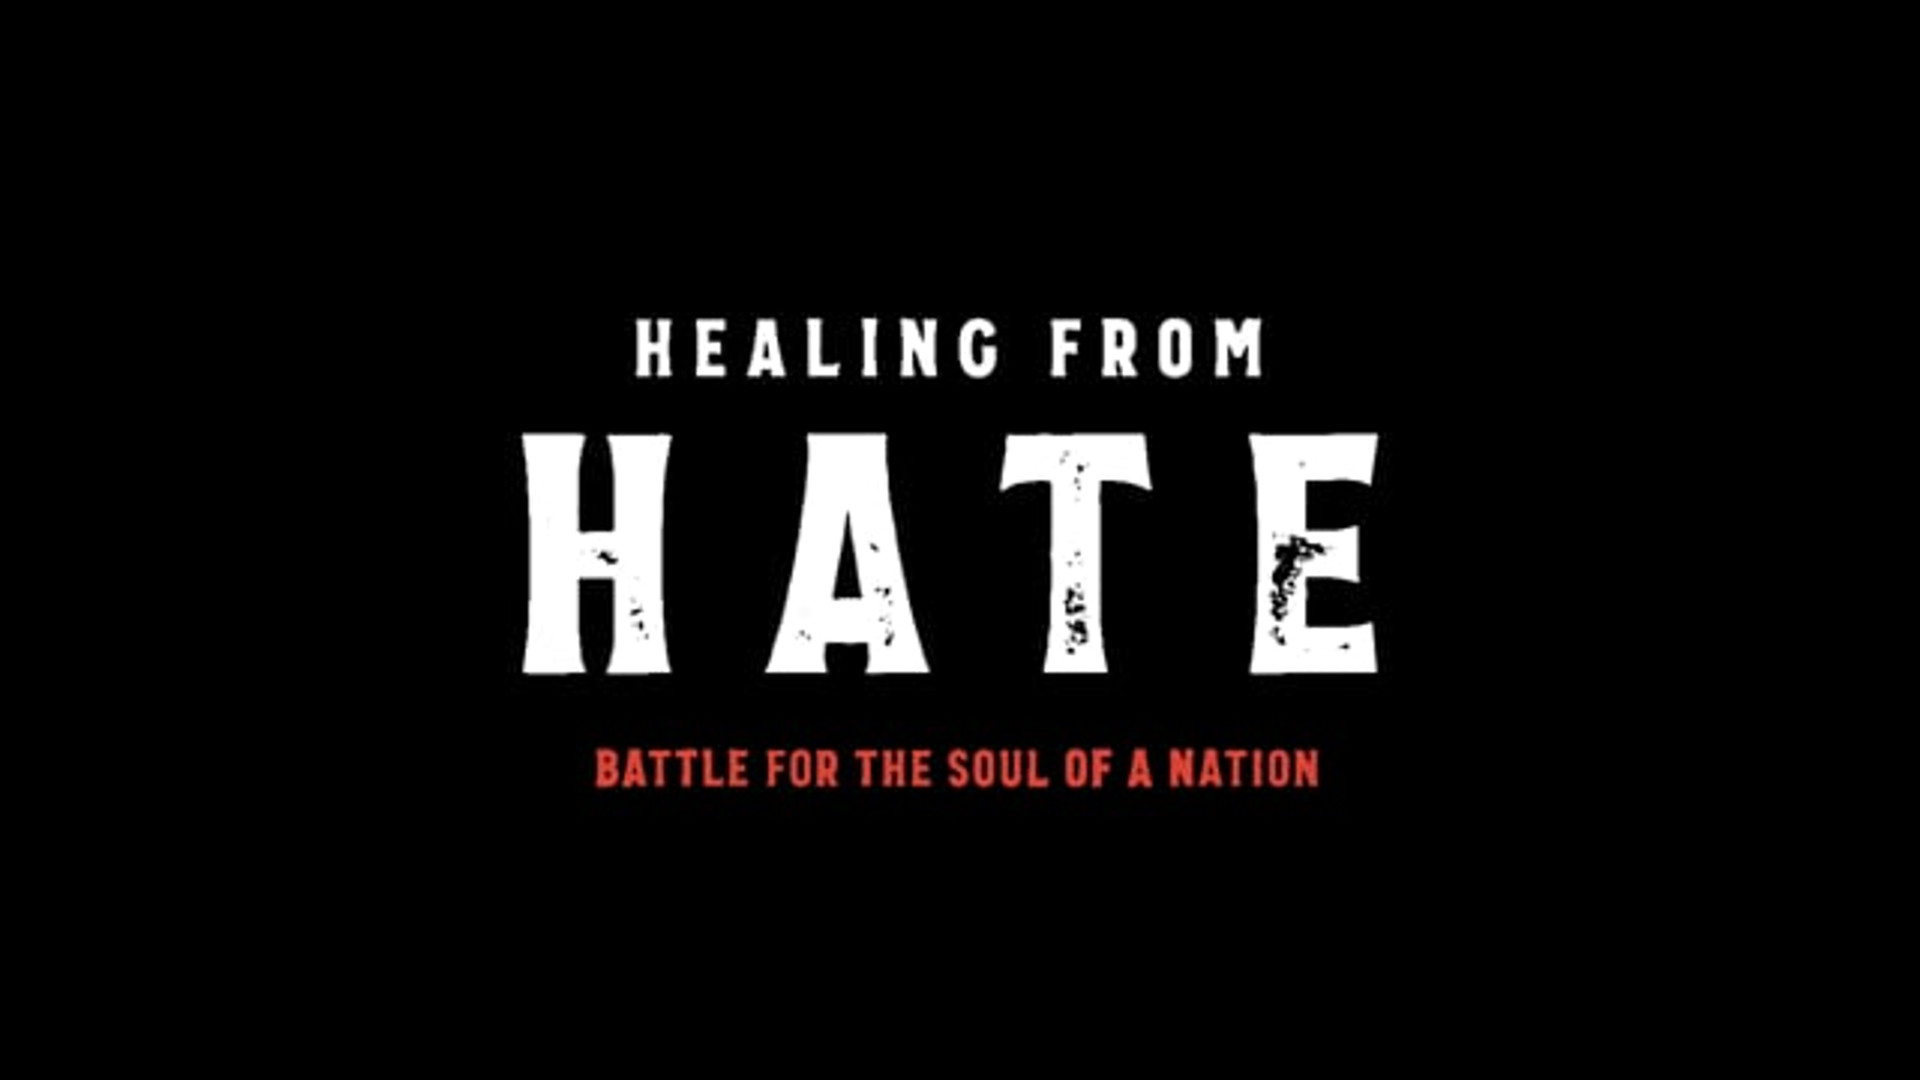 Healing from Hate, Battle for the Soul of a Nation